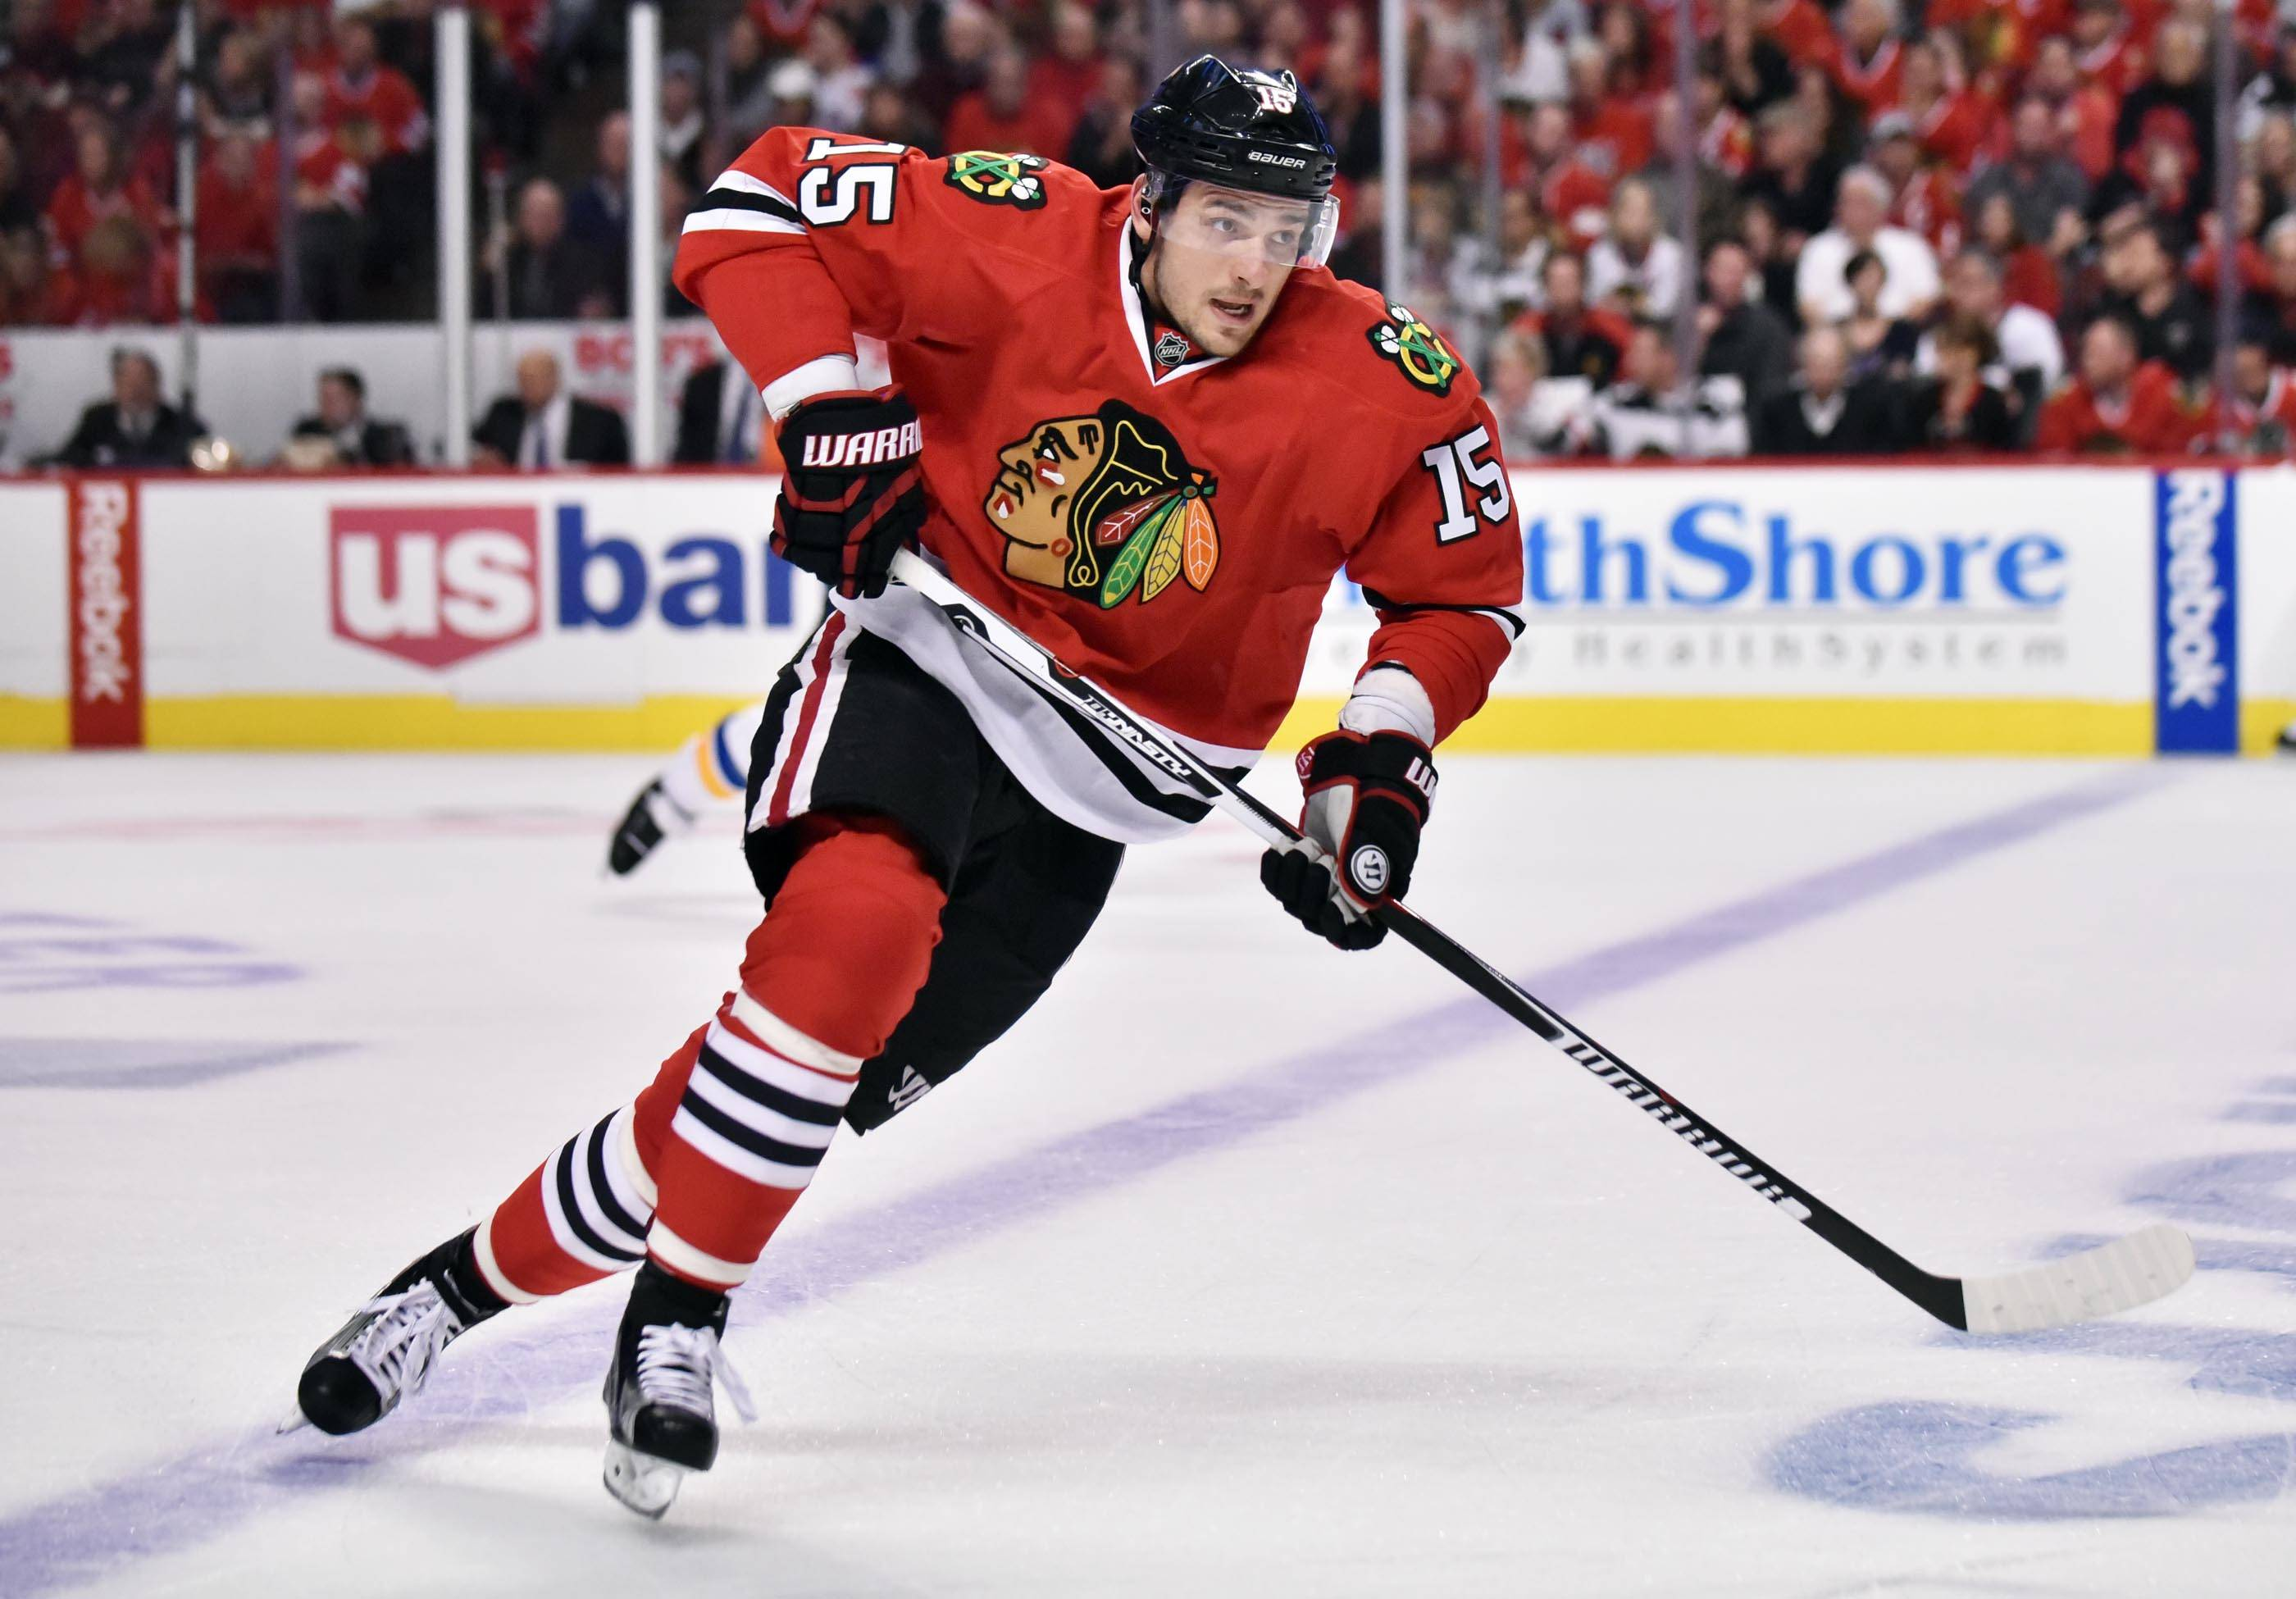 After playing in pain in the second half of the season, Blackhawks center Artem Anisimov had surgery to repair a tendon in his right wrist.